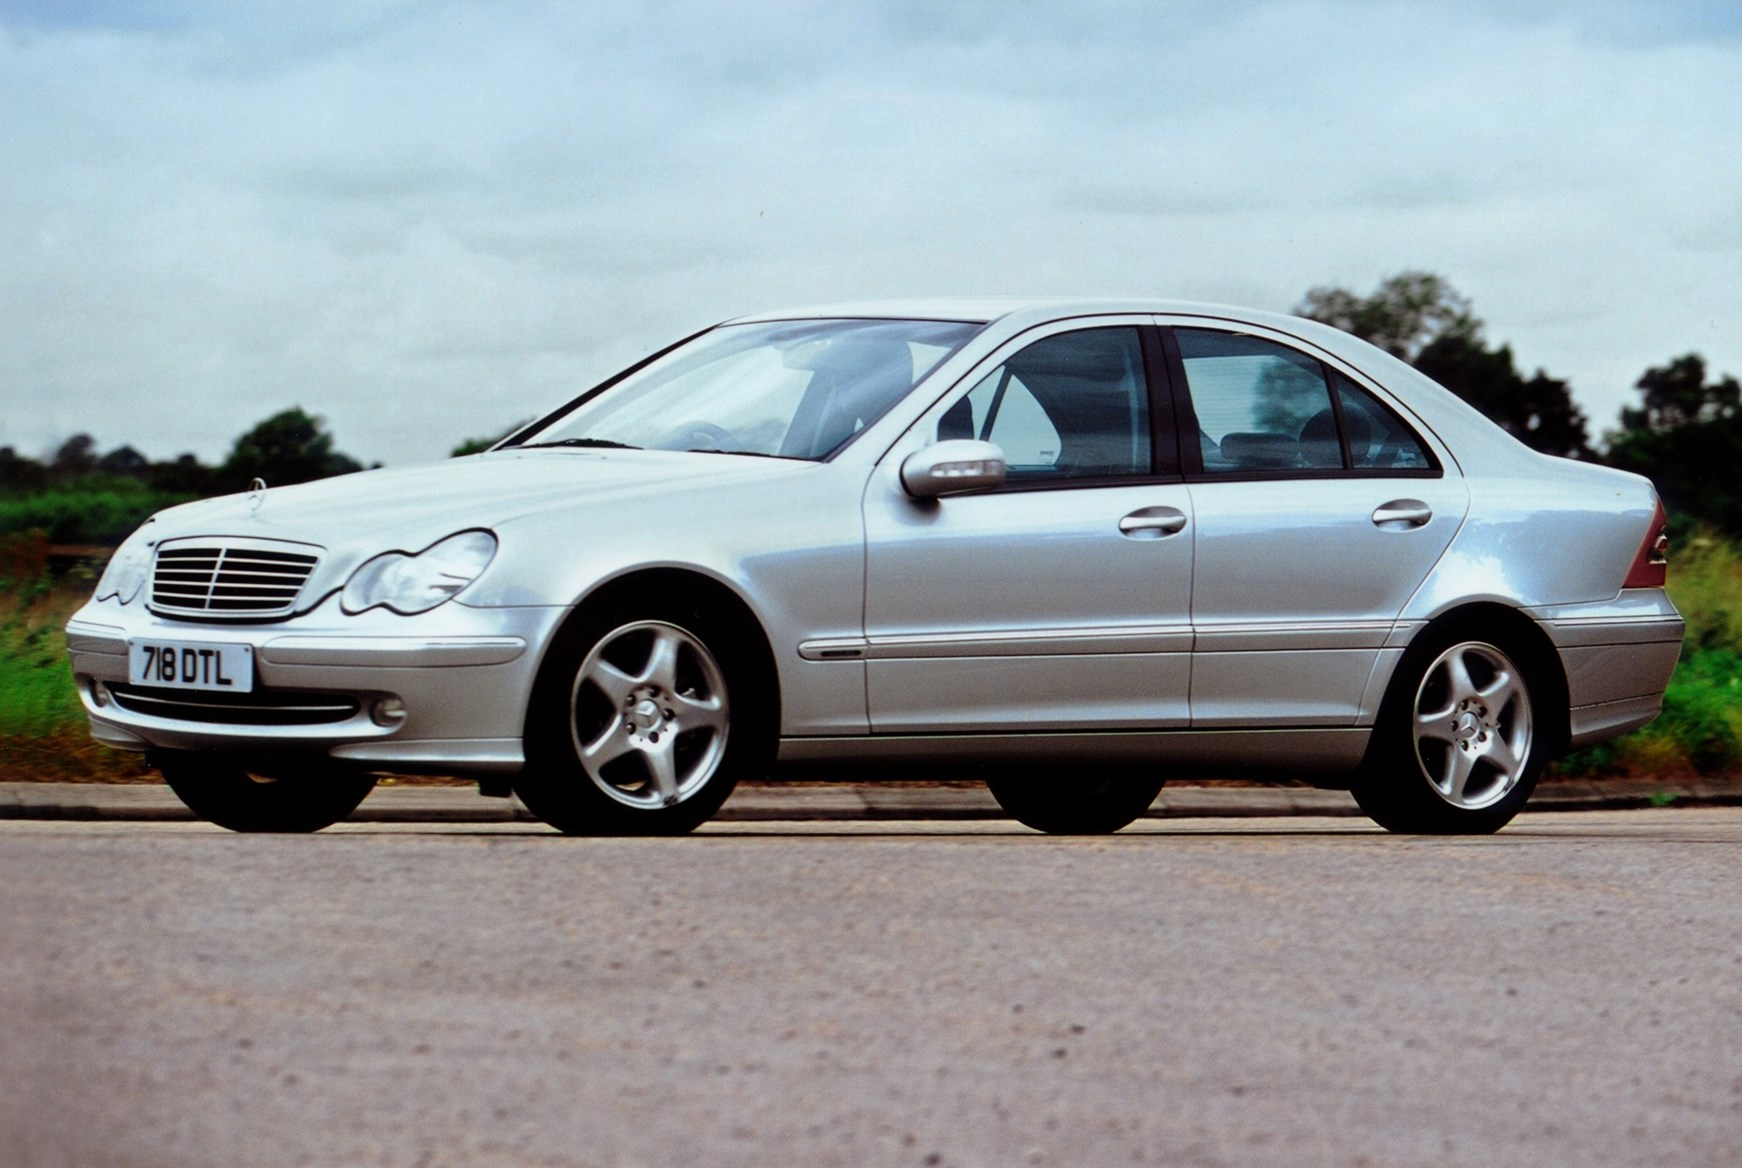 Mercedes benz c class saloon review 2000 2007 parkers for Mercedes benz c class review